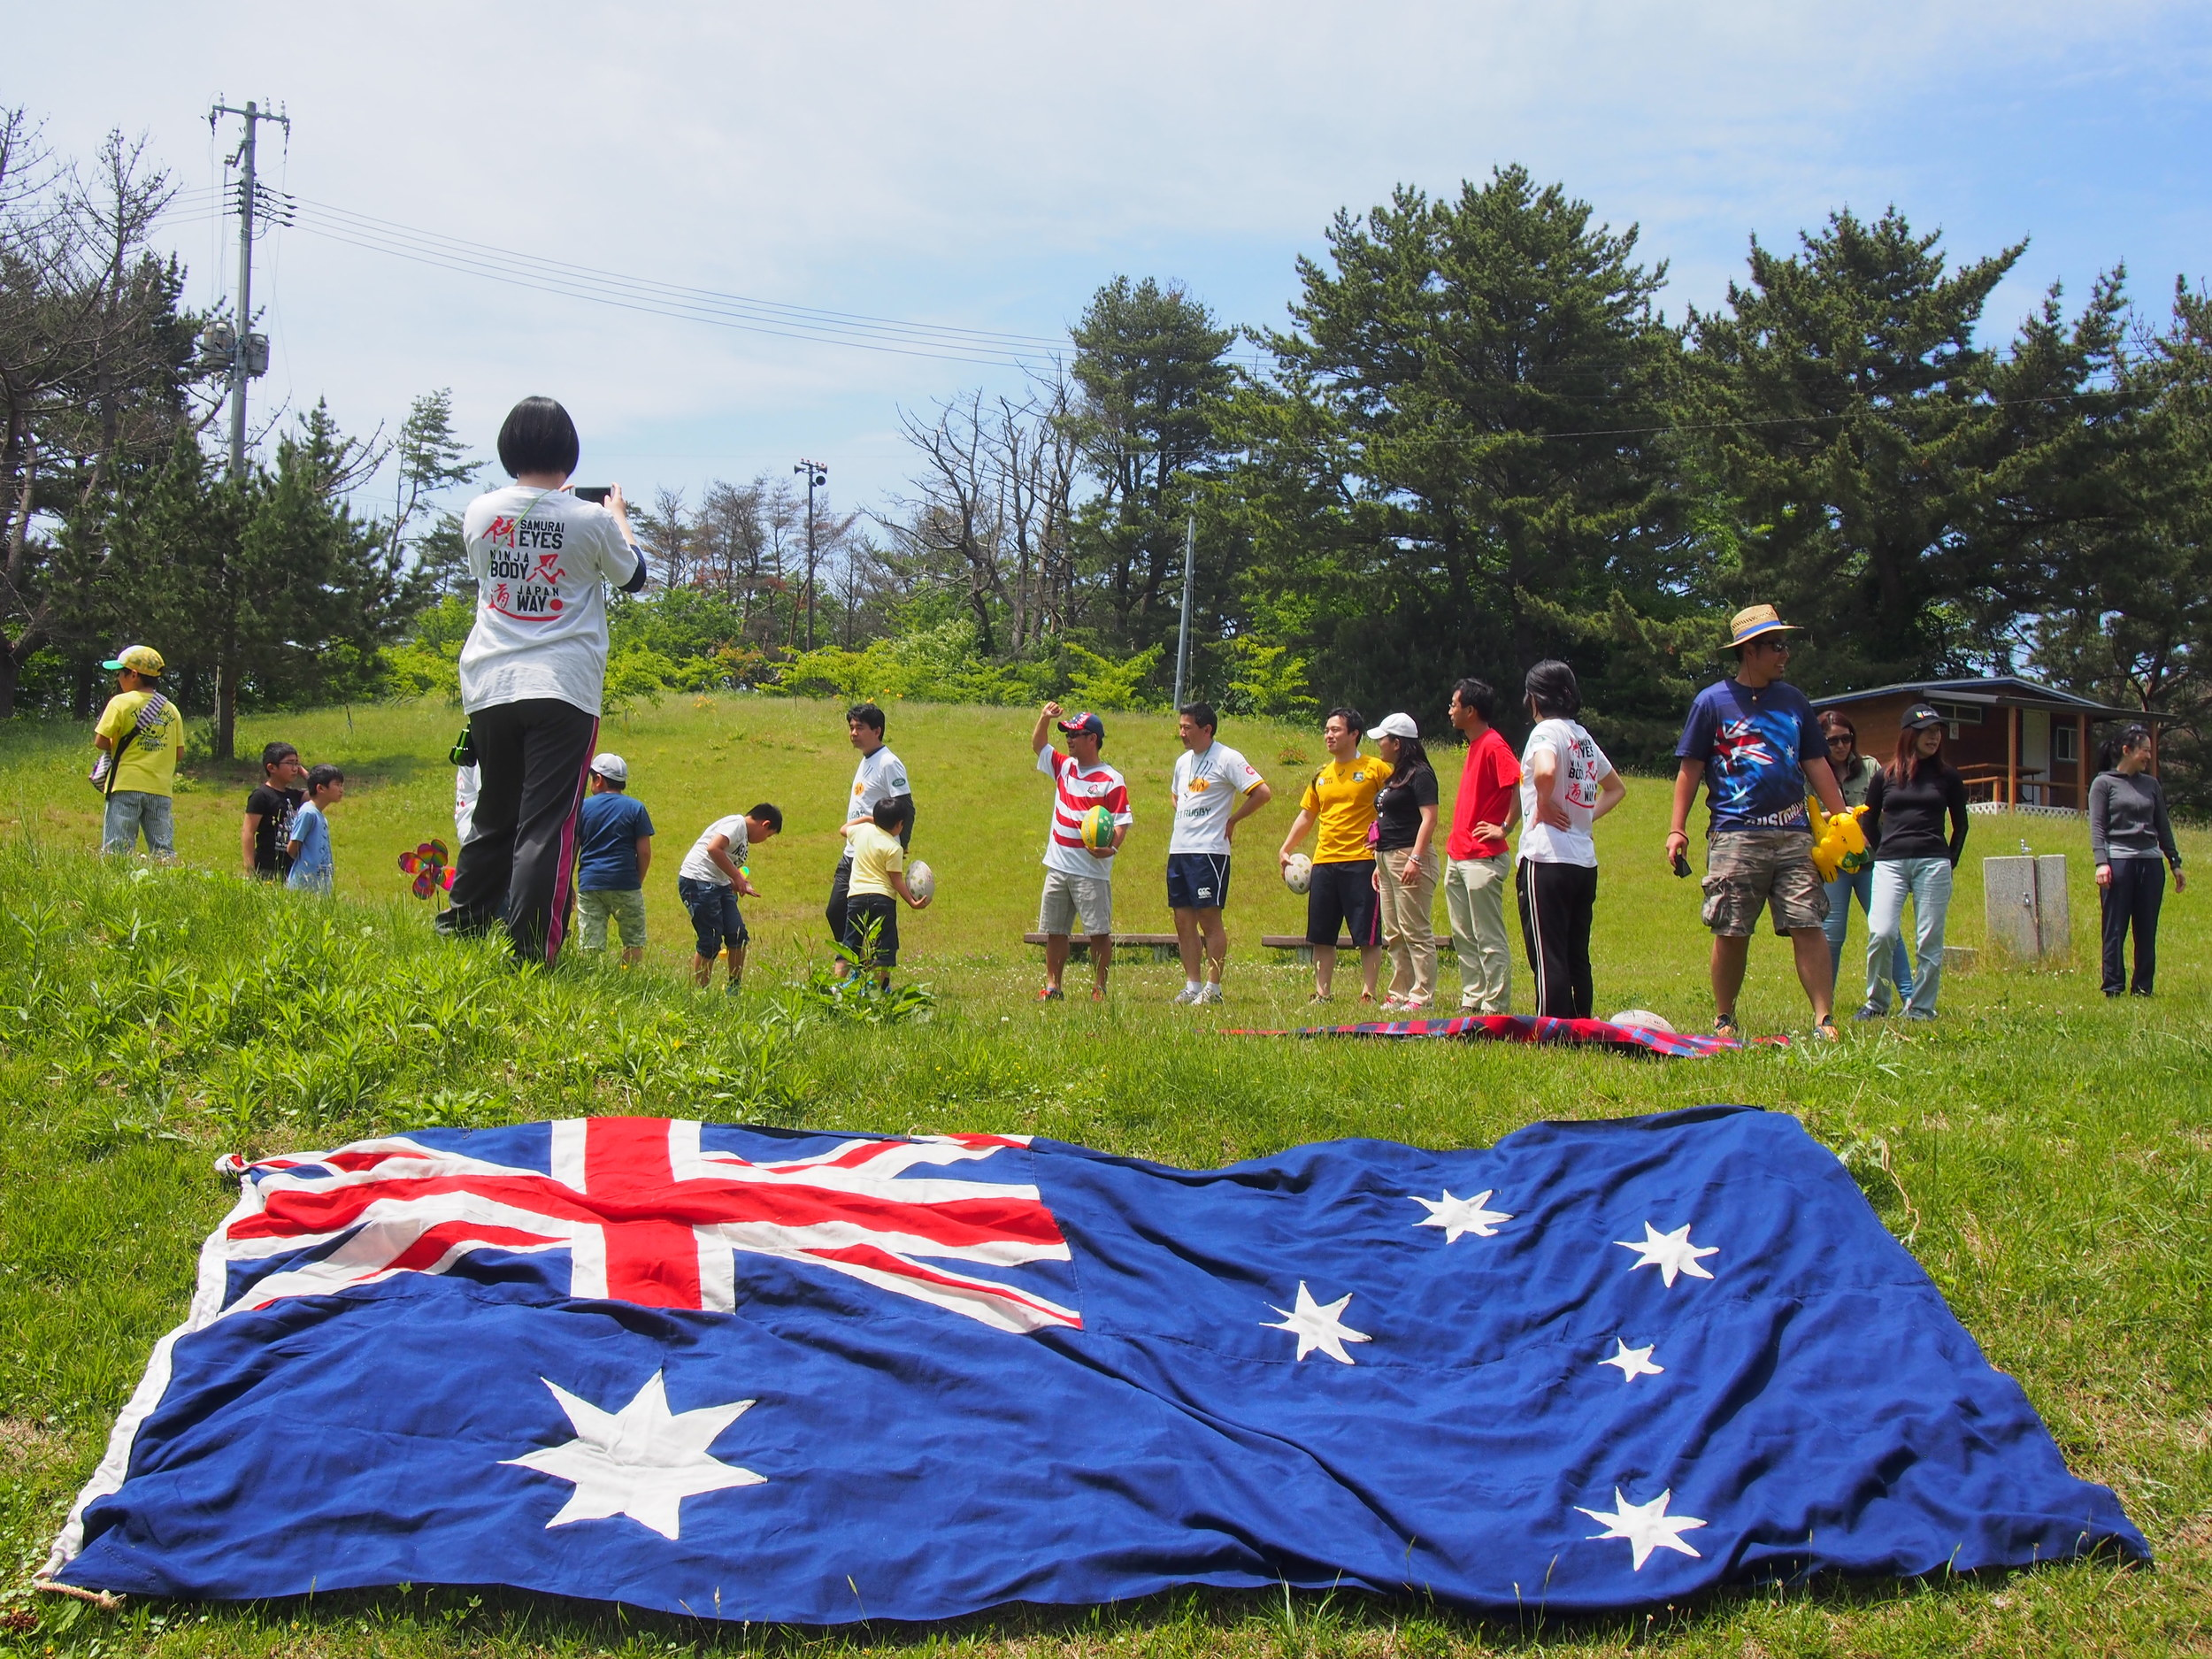 The international community makes it's presence known at our May pick-up Rugby BBQ event!